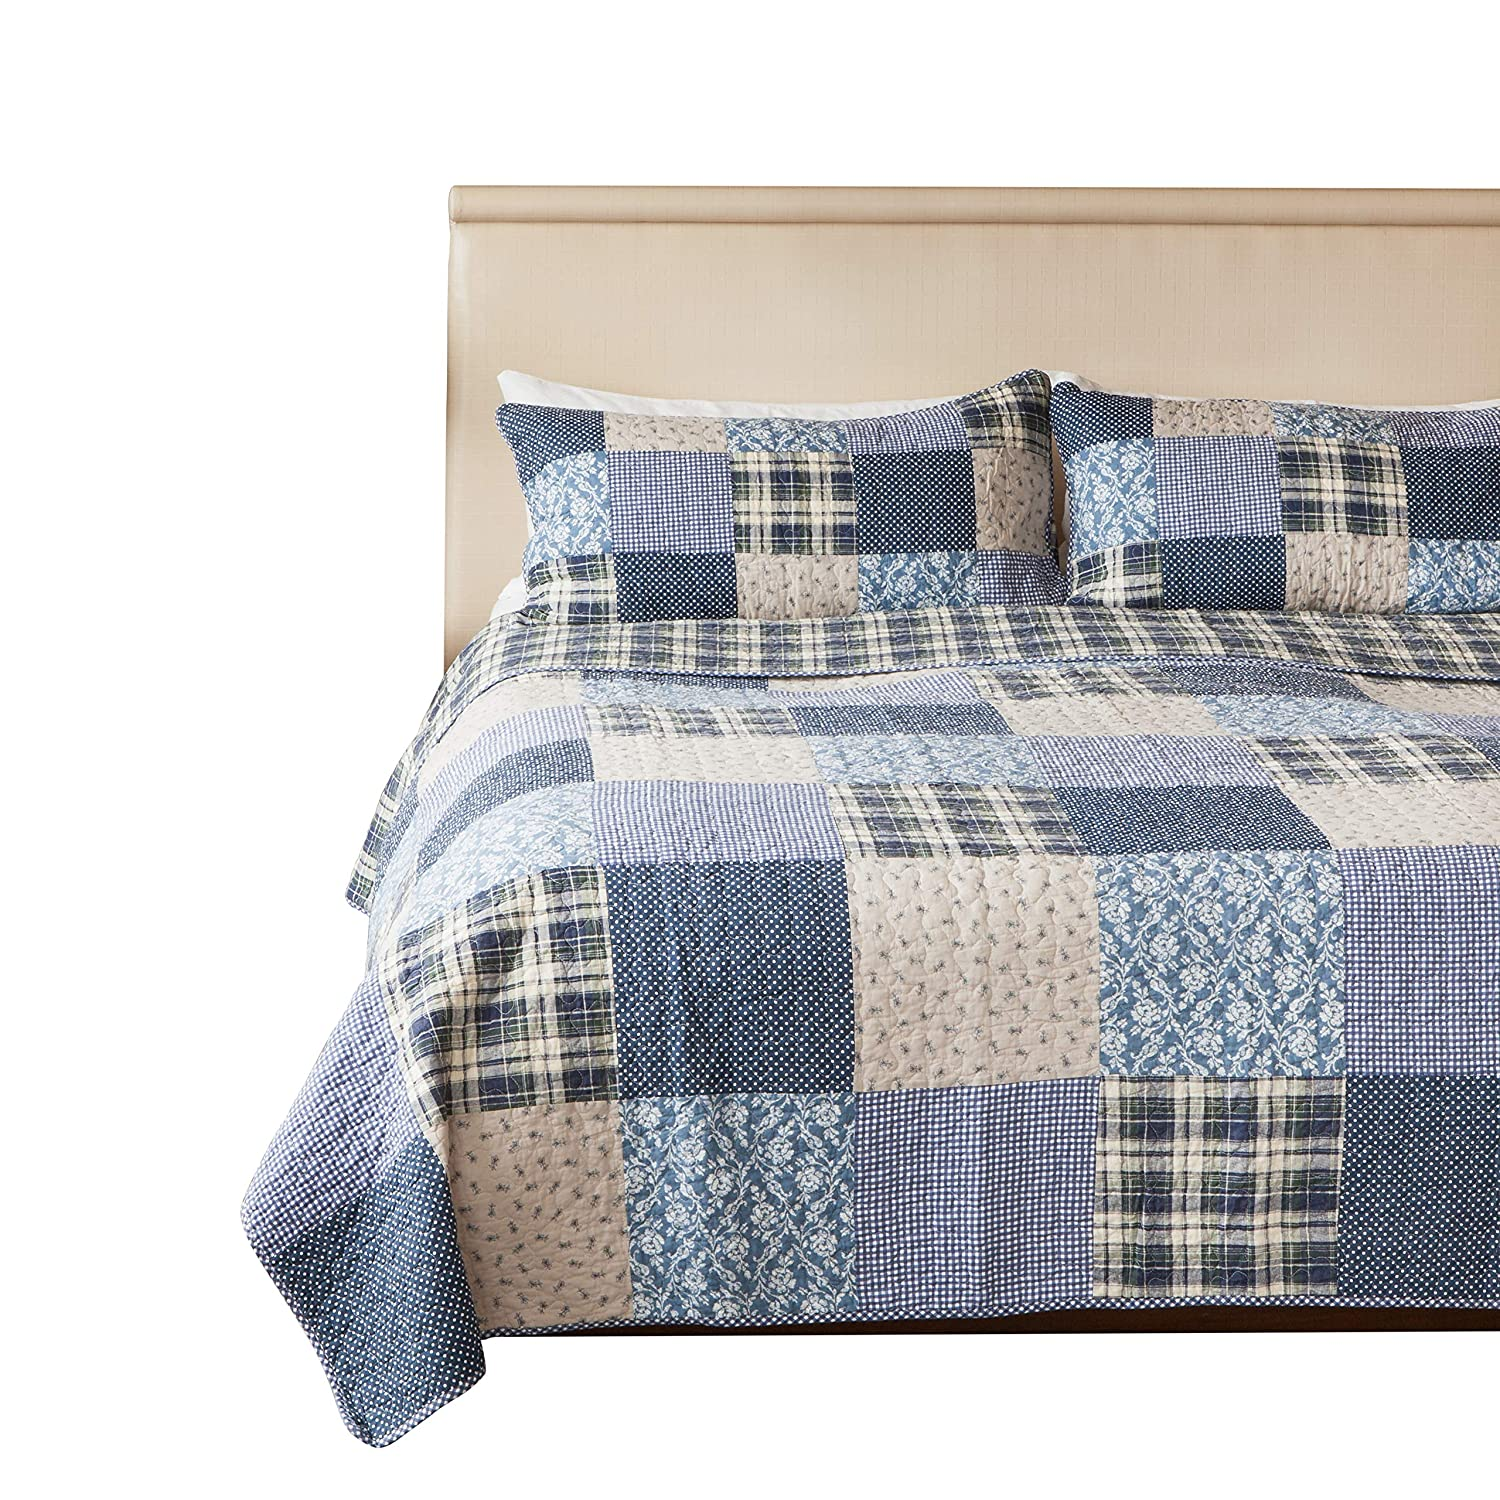 SLPR Blue Symphony 2-Piece Real Patchwork Cotton Quilt Set (Twin) | with 1 Sham Pre-Washed Reversible Machine Washable Lightweight Bedspread Coverlet COMIN18JU037467